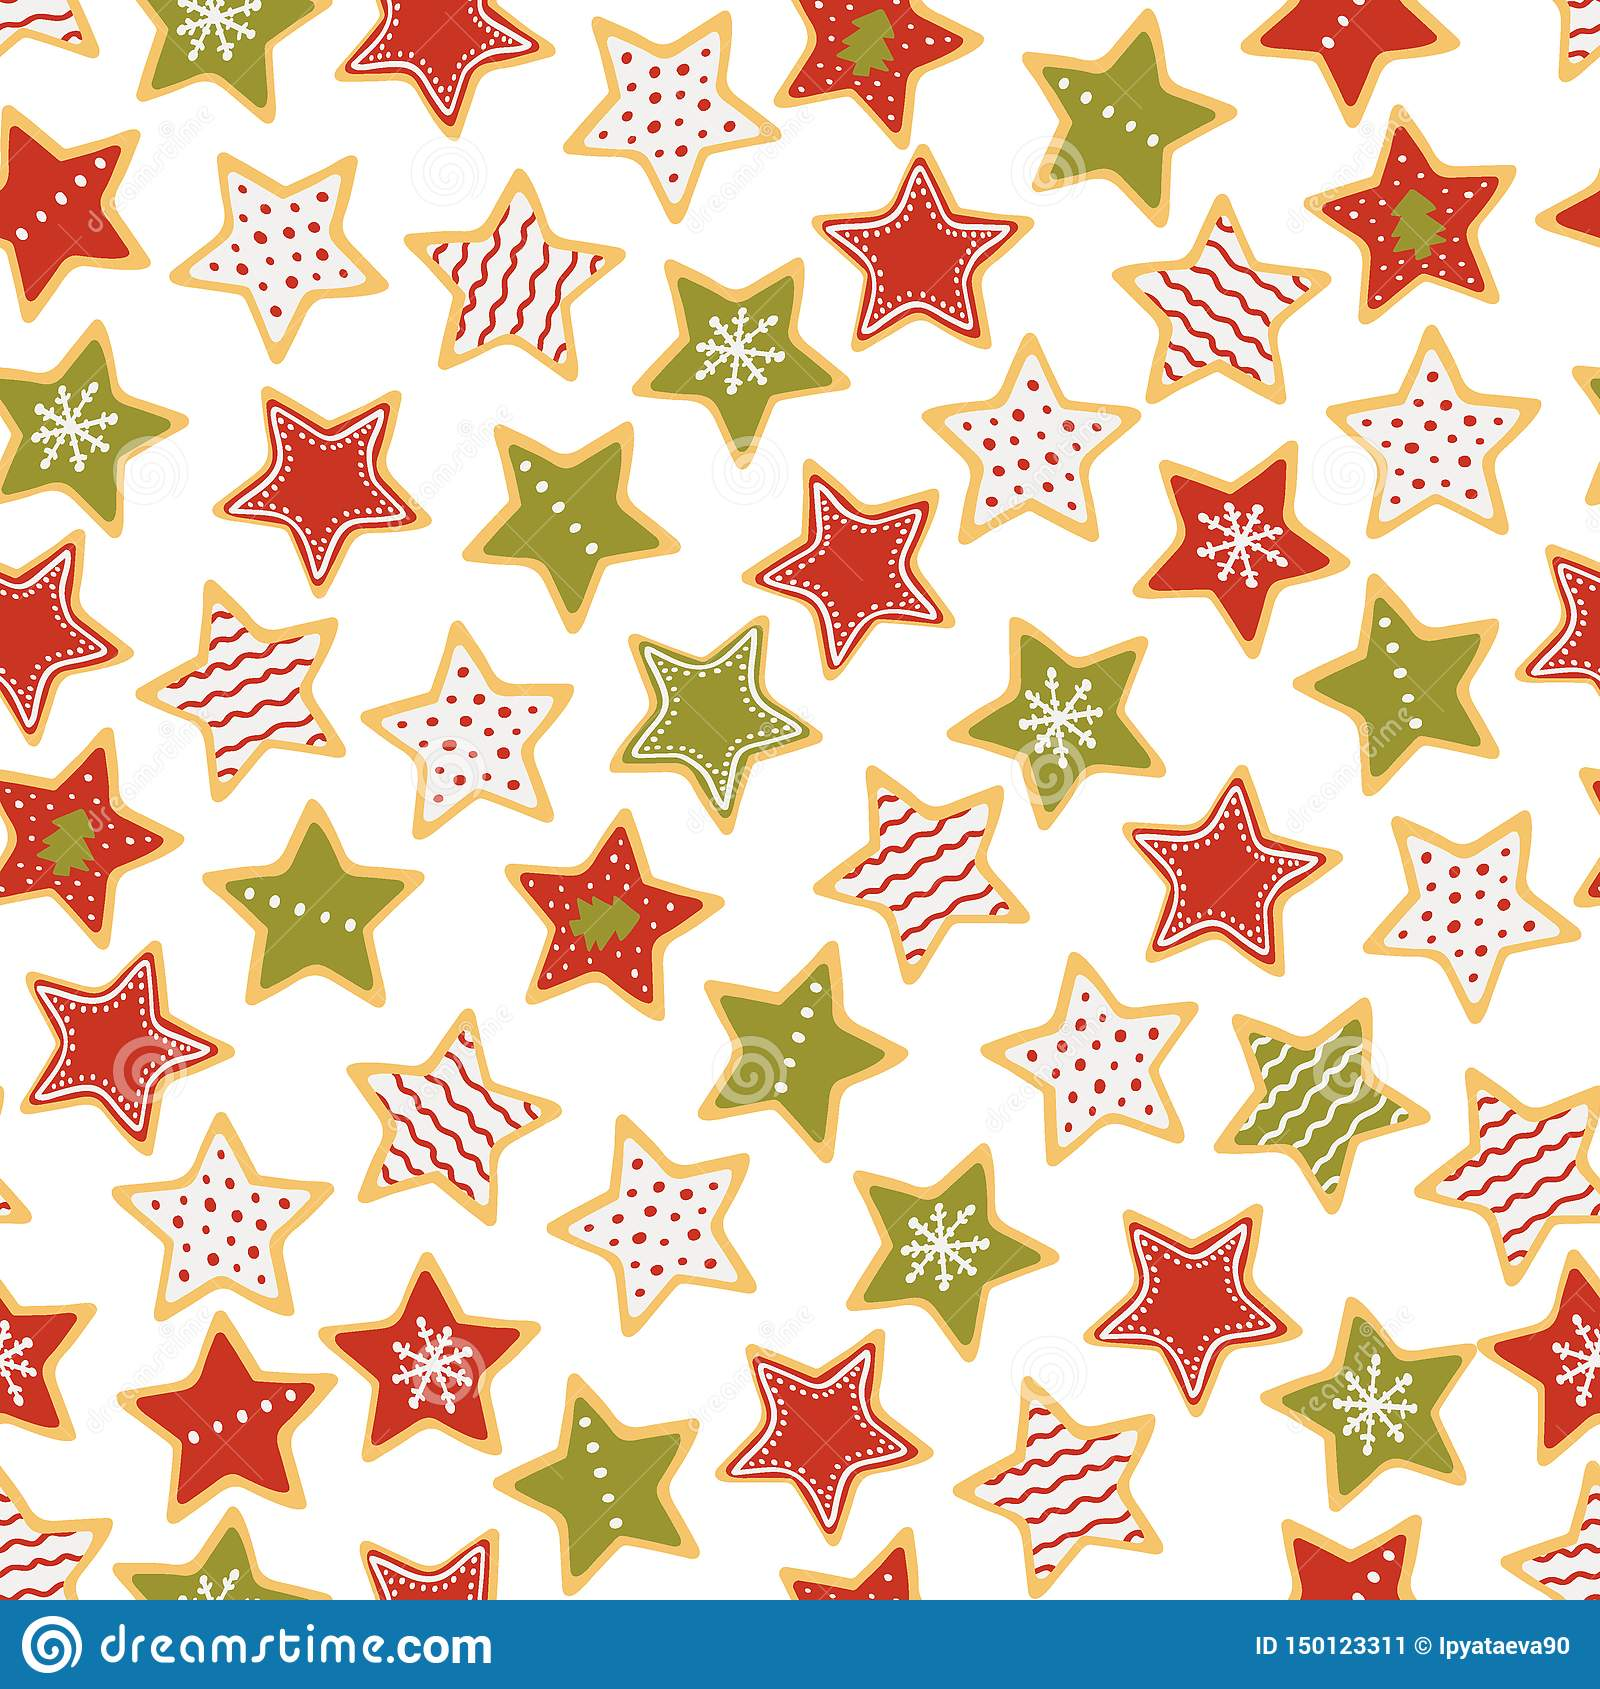 Star shaped Christmas gingerbread seamless pattern. Christmas sweets. Vector illustration.